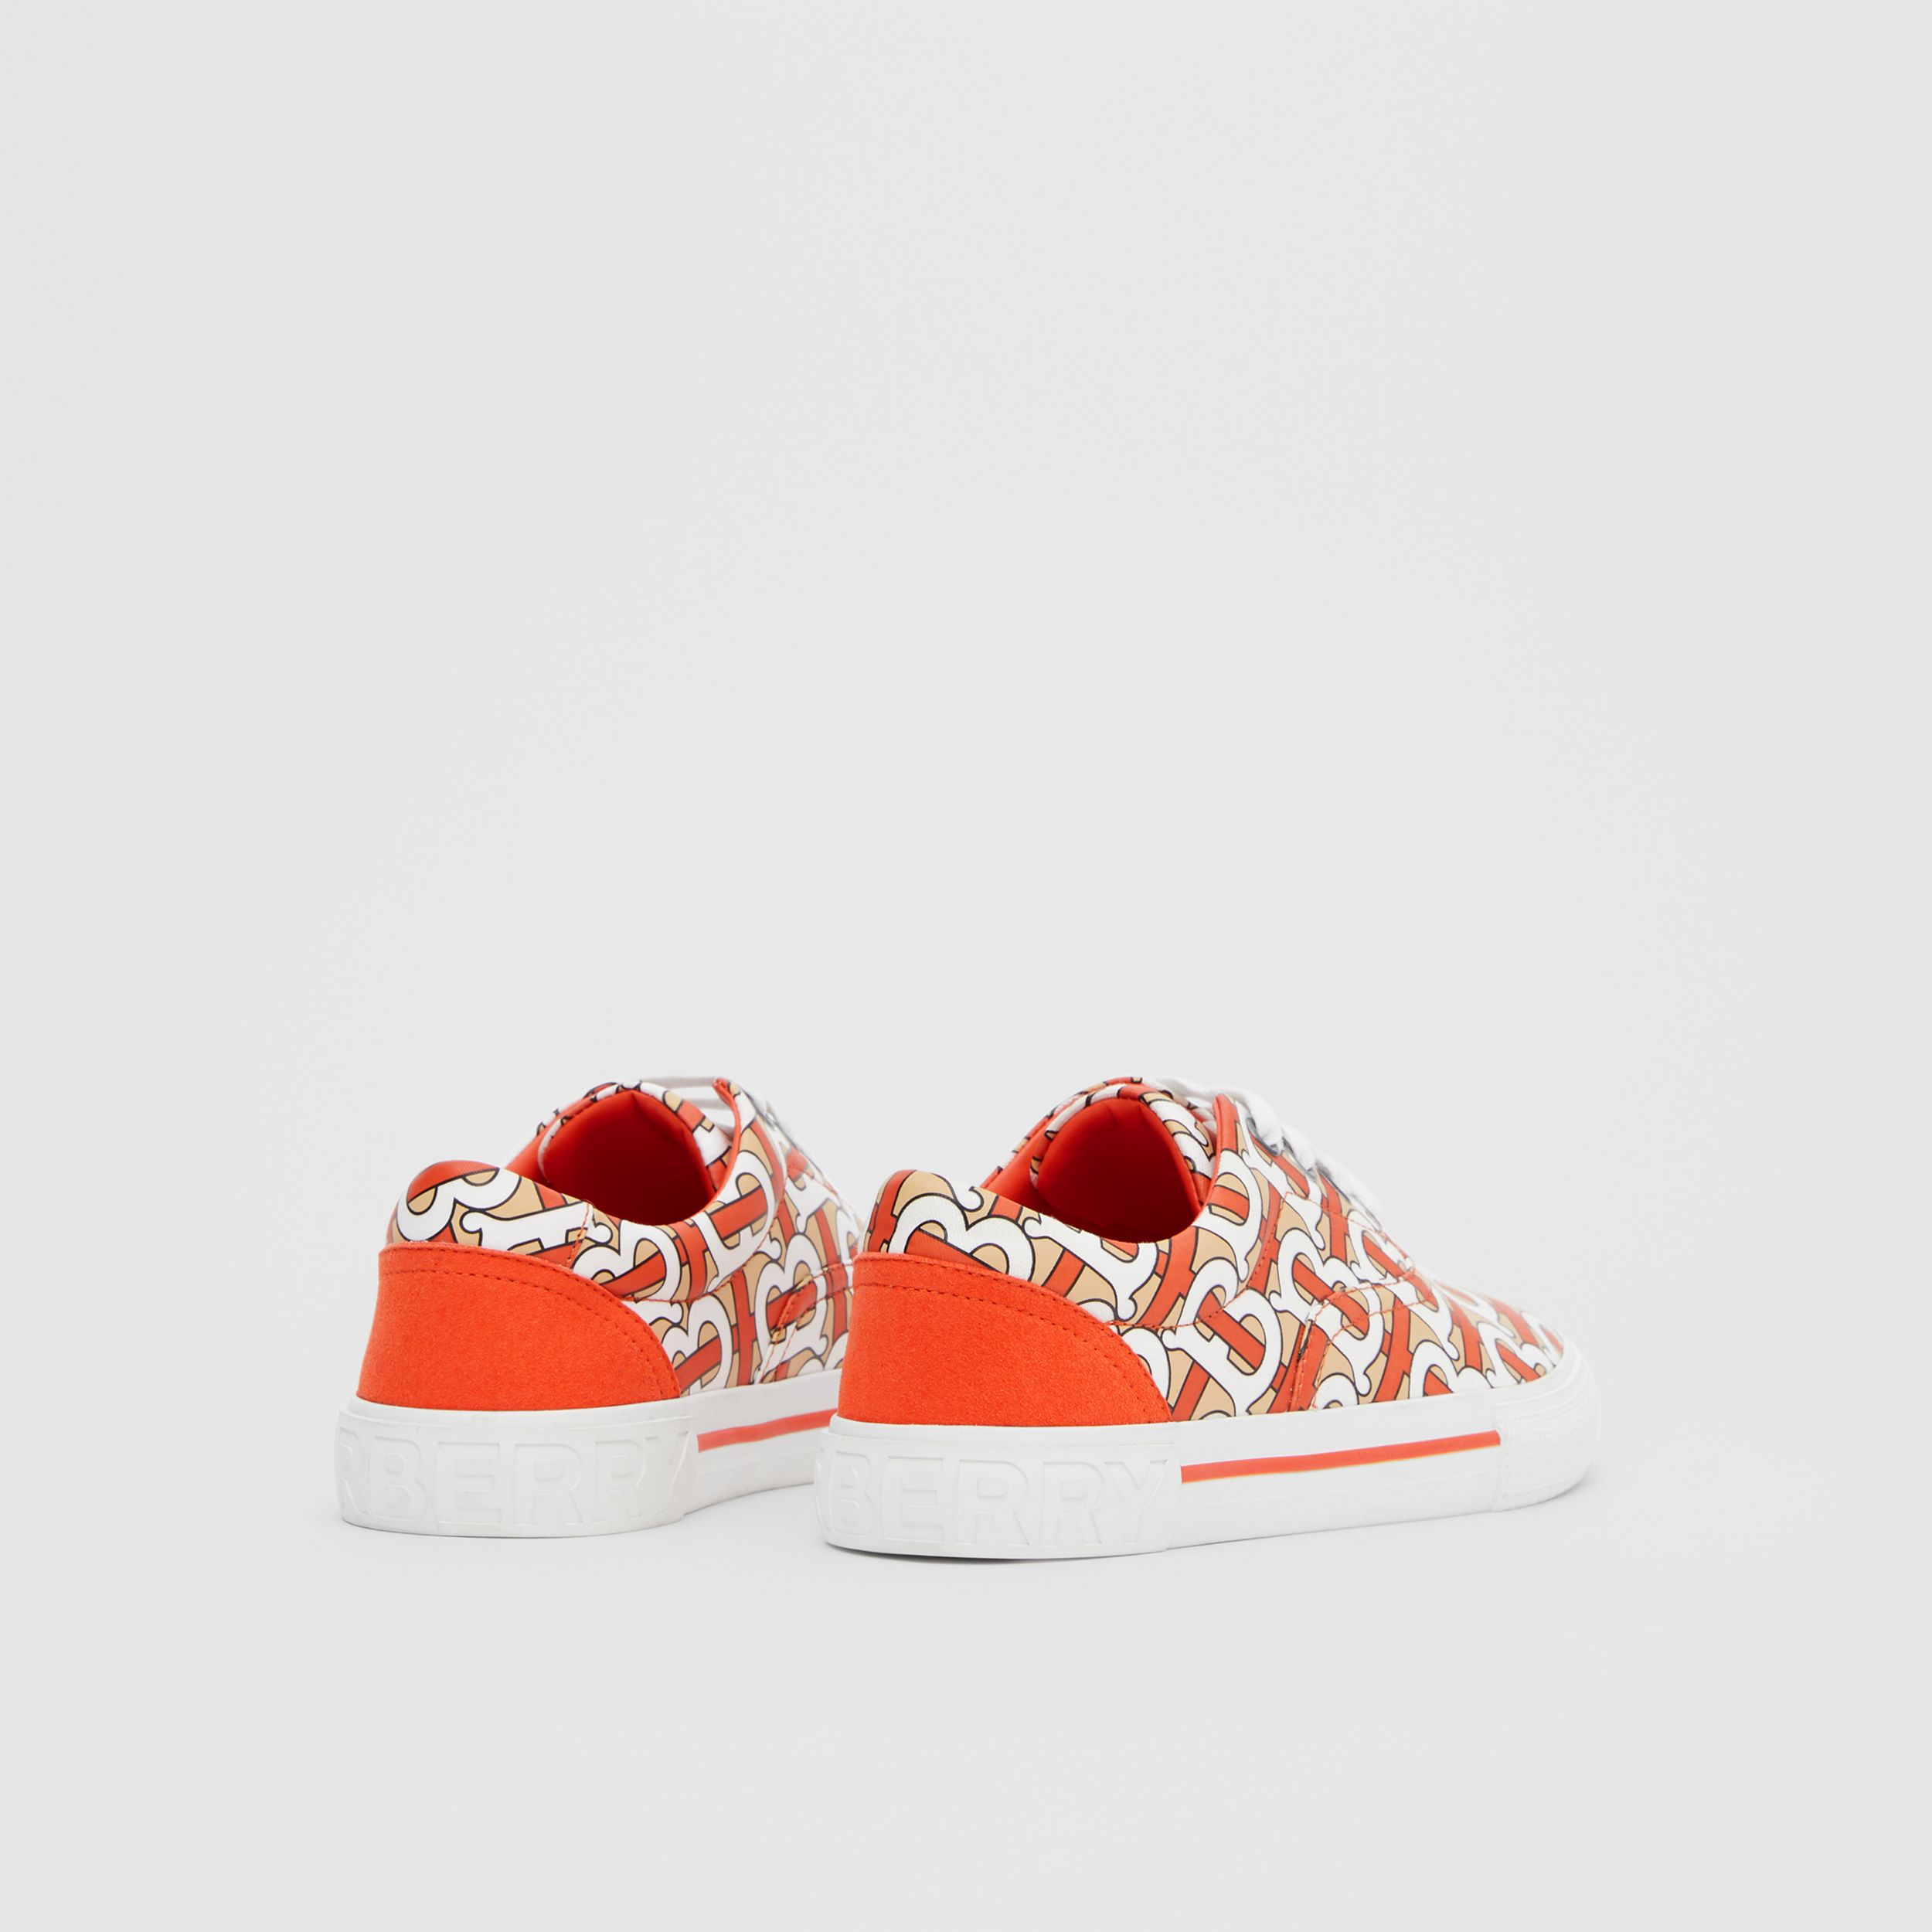 Monogram Print Cotton Gabardine Sneakers in Vermilion Red - Children | Burberry - 3